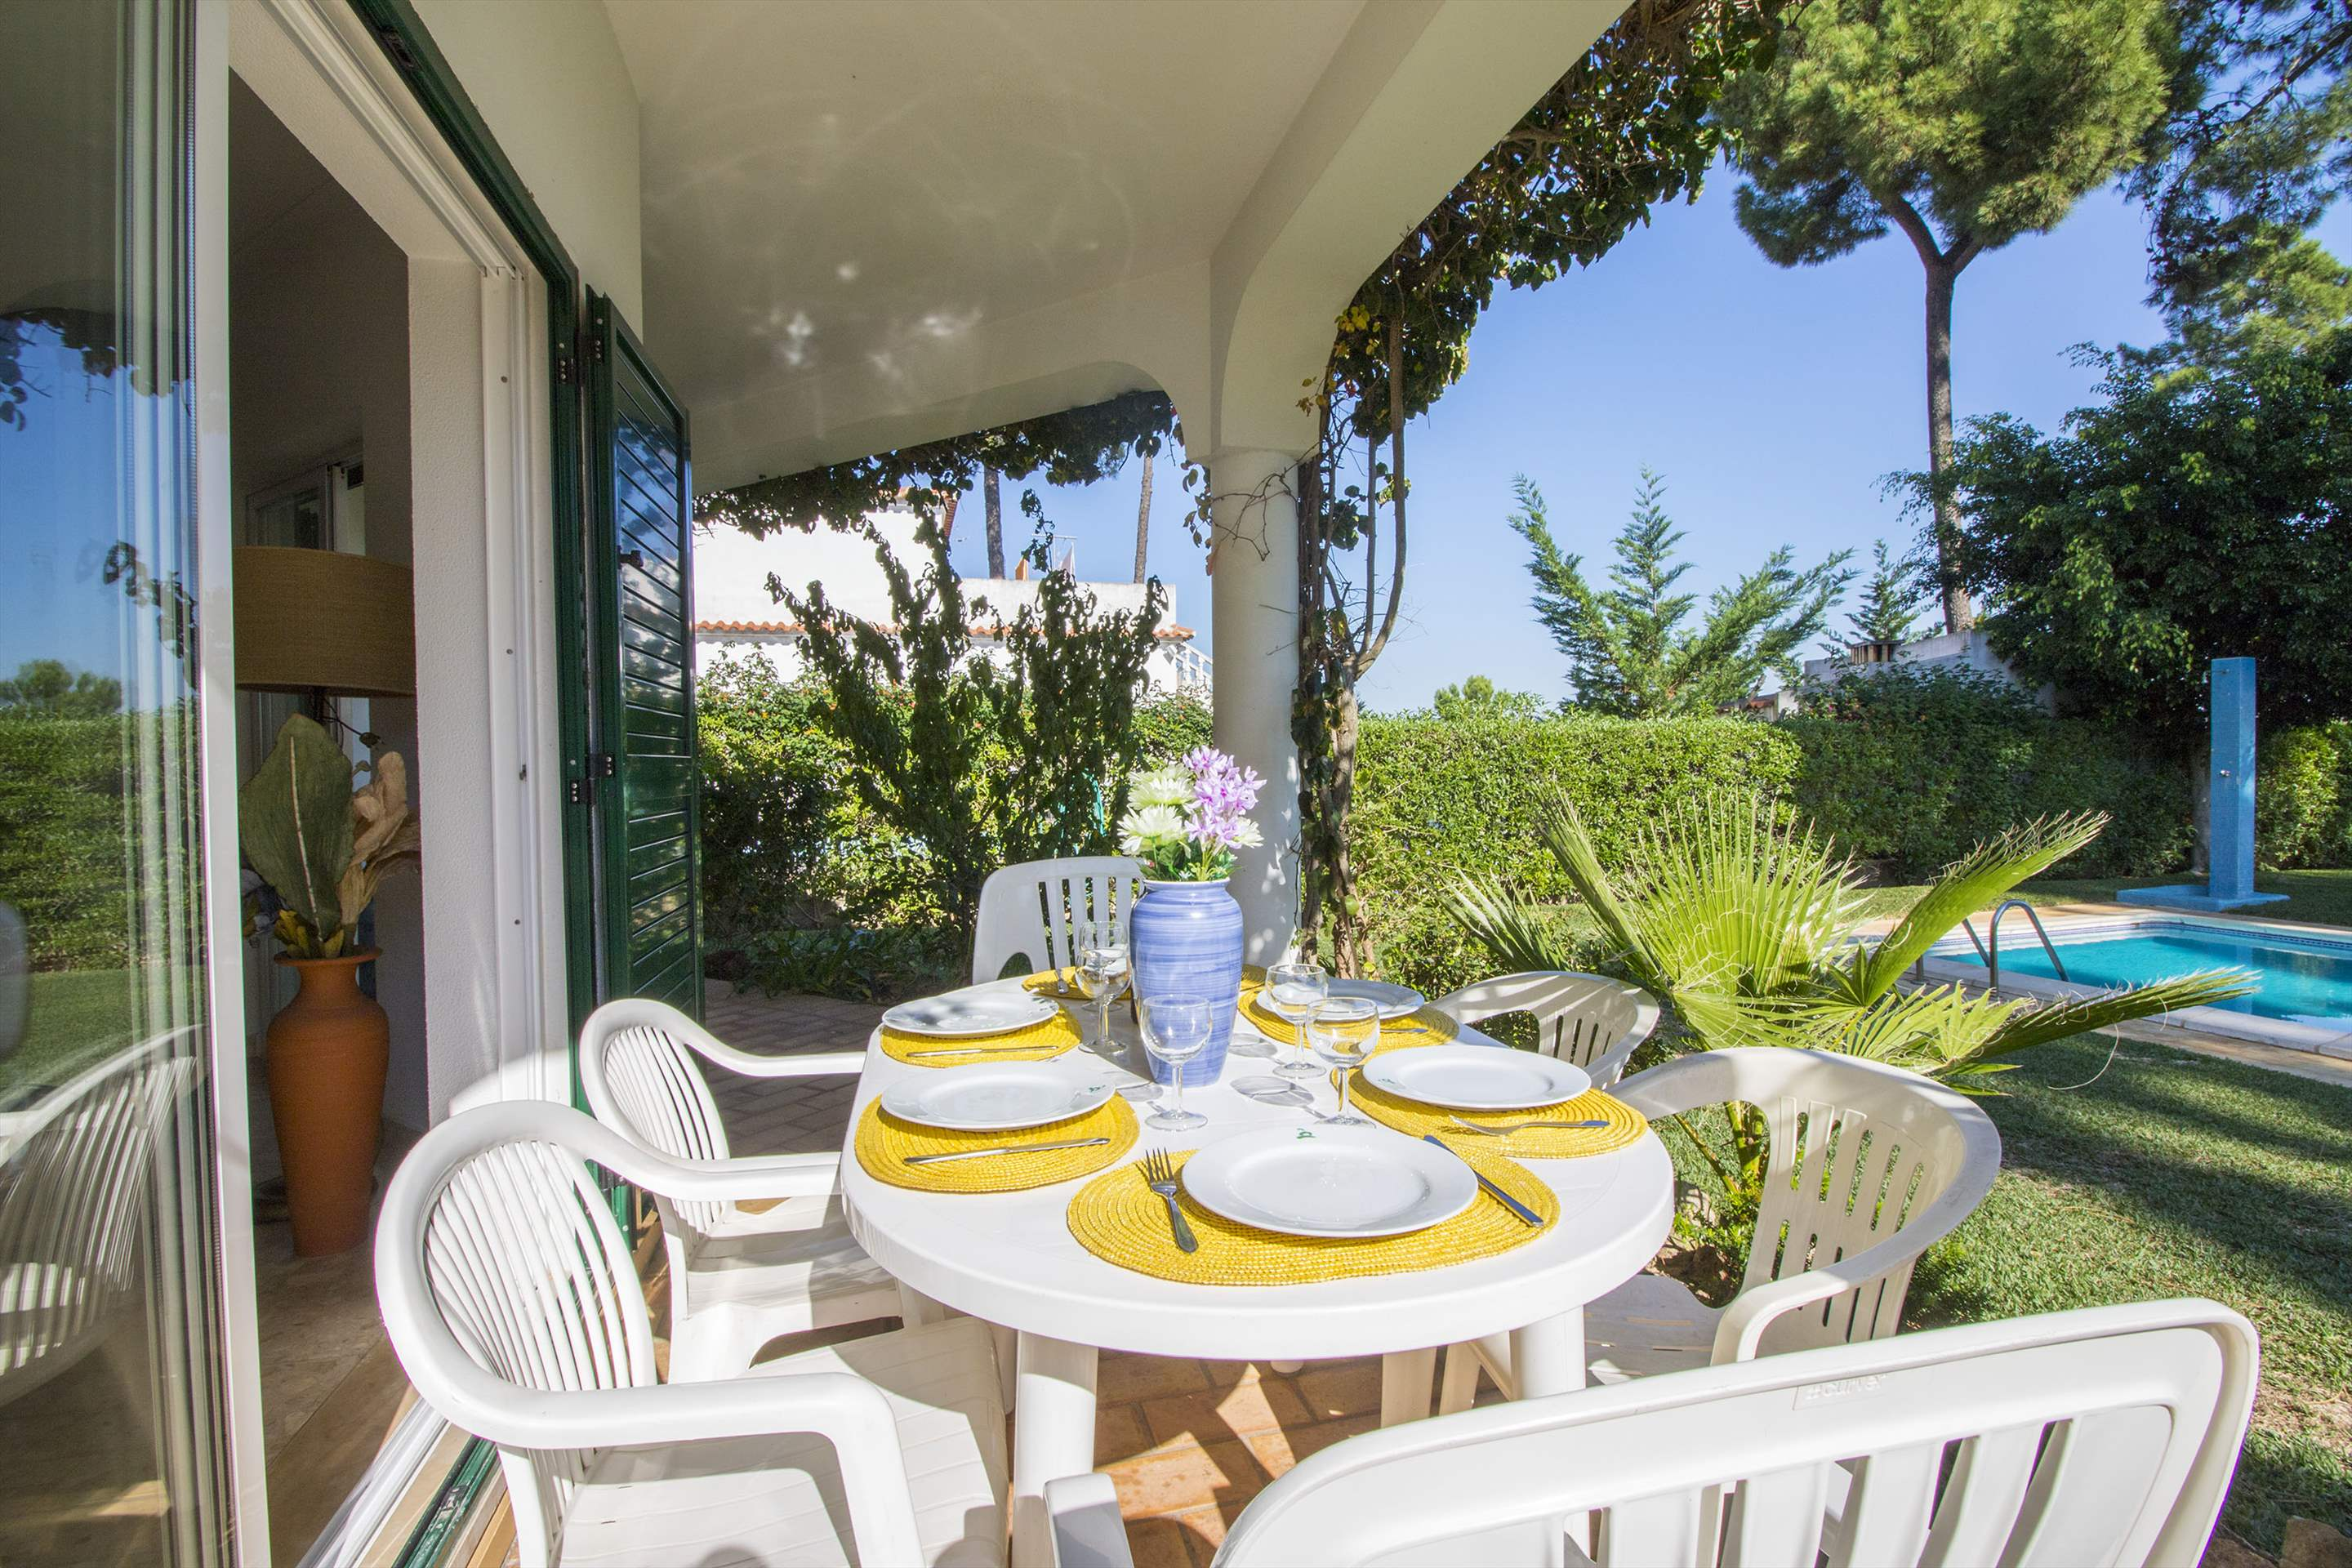 Villa Clara, 4 bedroom villa in Vilamoura Area, Algarve Photo #2